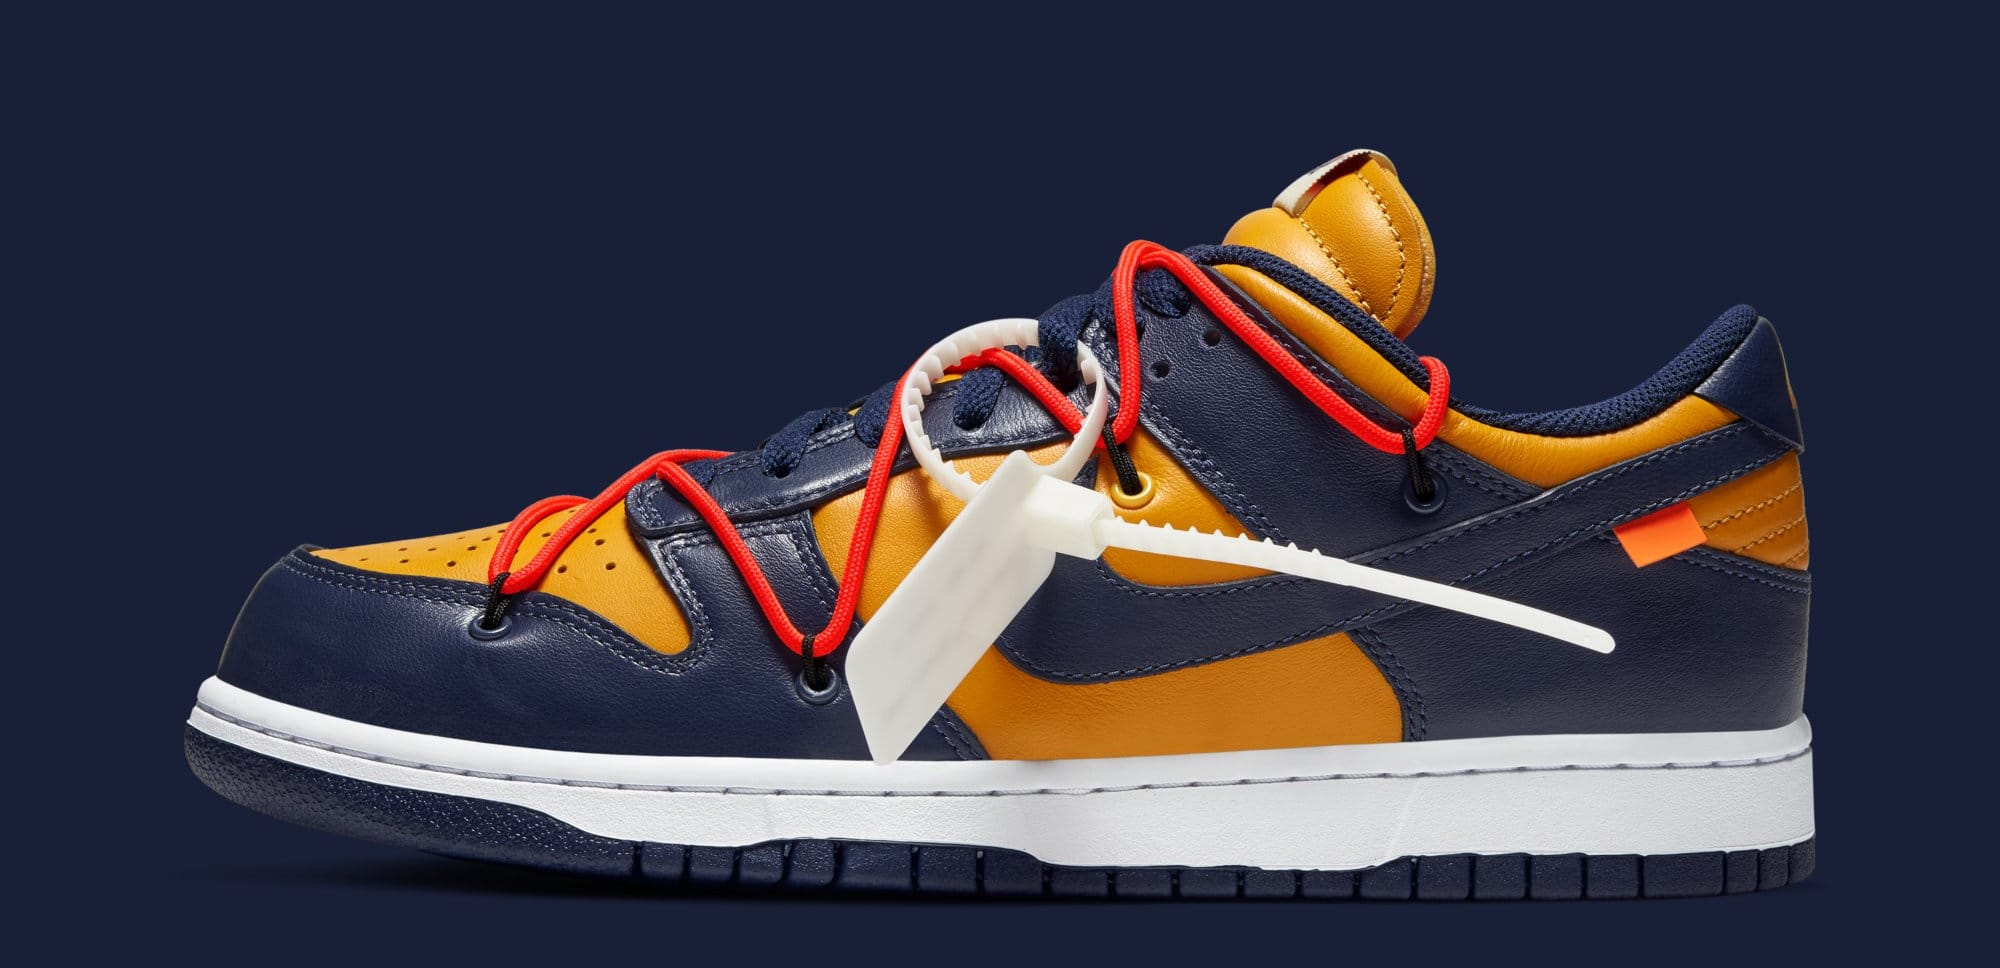 Off-White x Nike Dunk Low 'University Gold/White/Midnight Navy' CT0856-700 (Lateral)